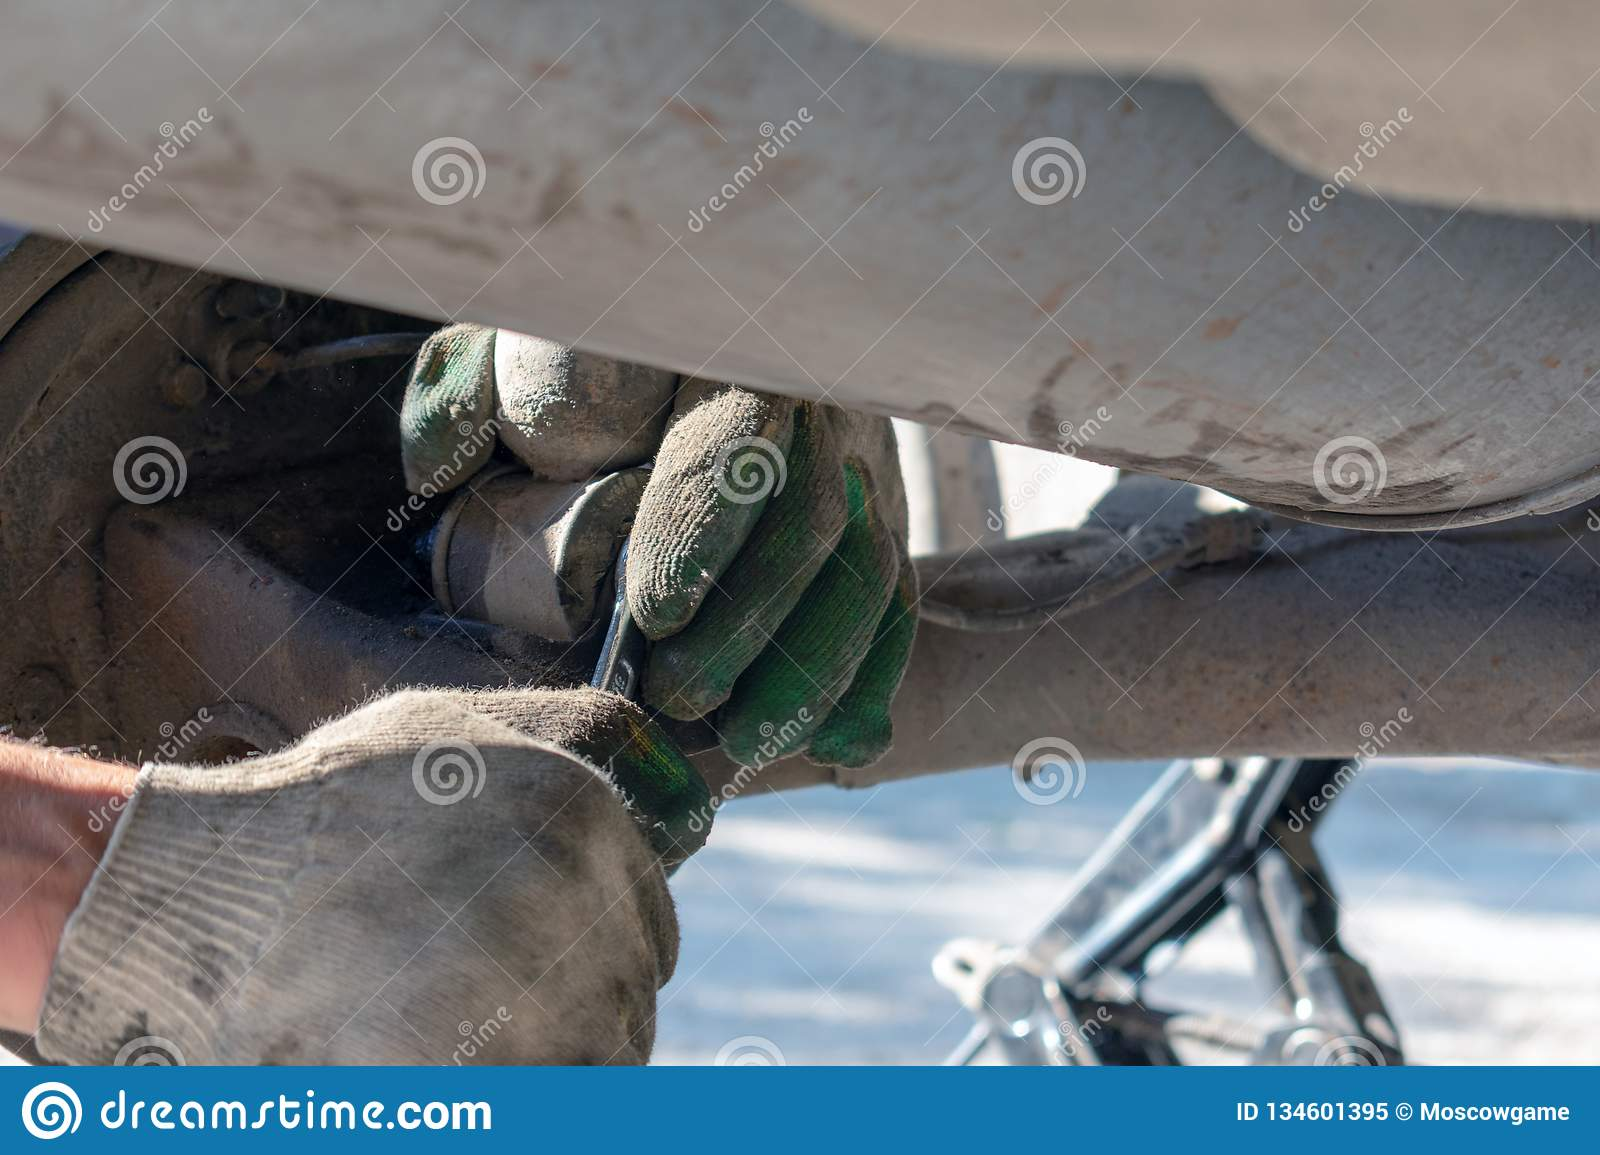 Repair of the car suspension. Gloved hand. Replacing the shock absorber strut